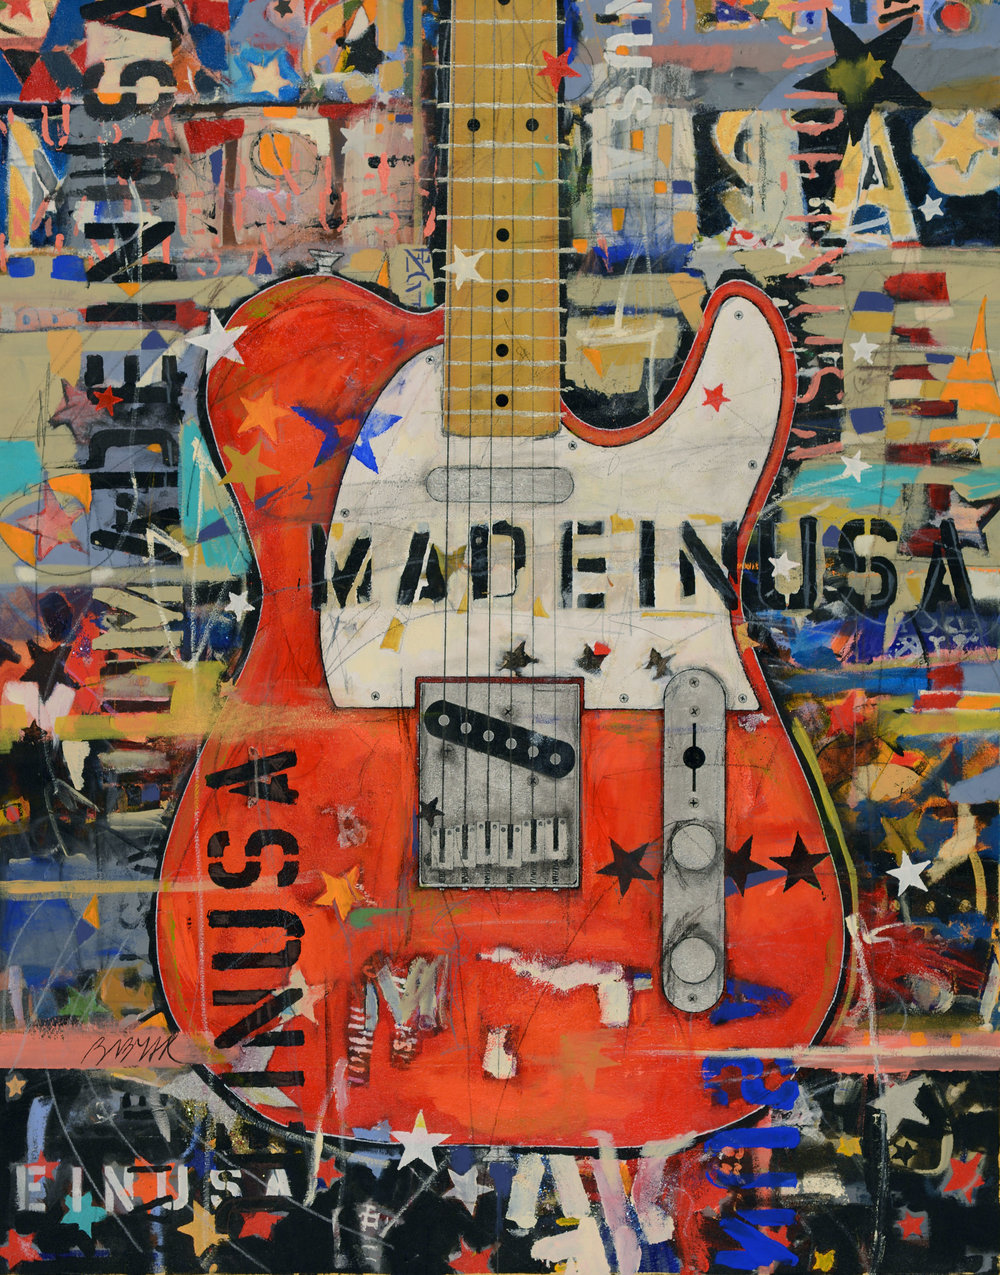 Red Telecaster • 54 X 42 • Acrylic, graphite, glitter, 24K gold leaf, silver leaf, polymer netting on canvas